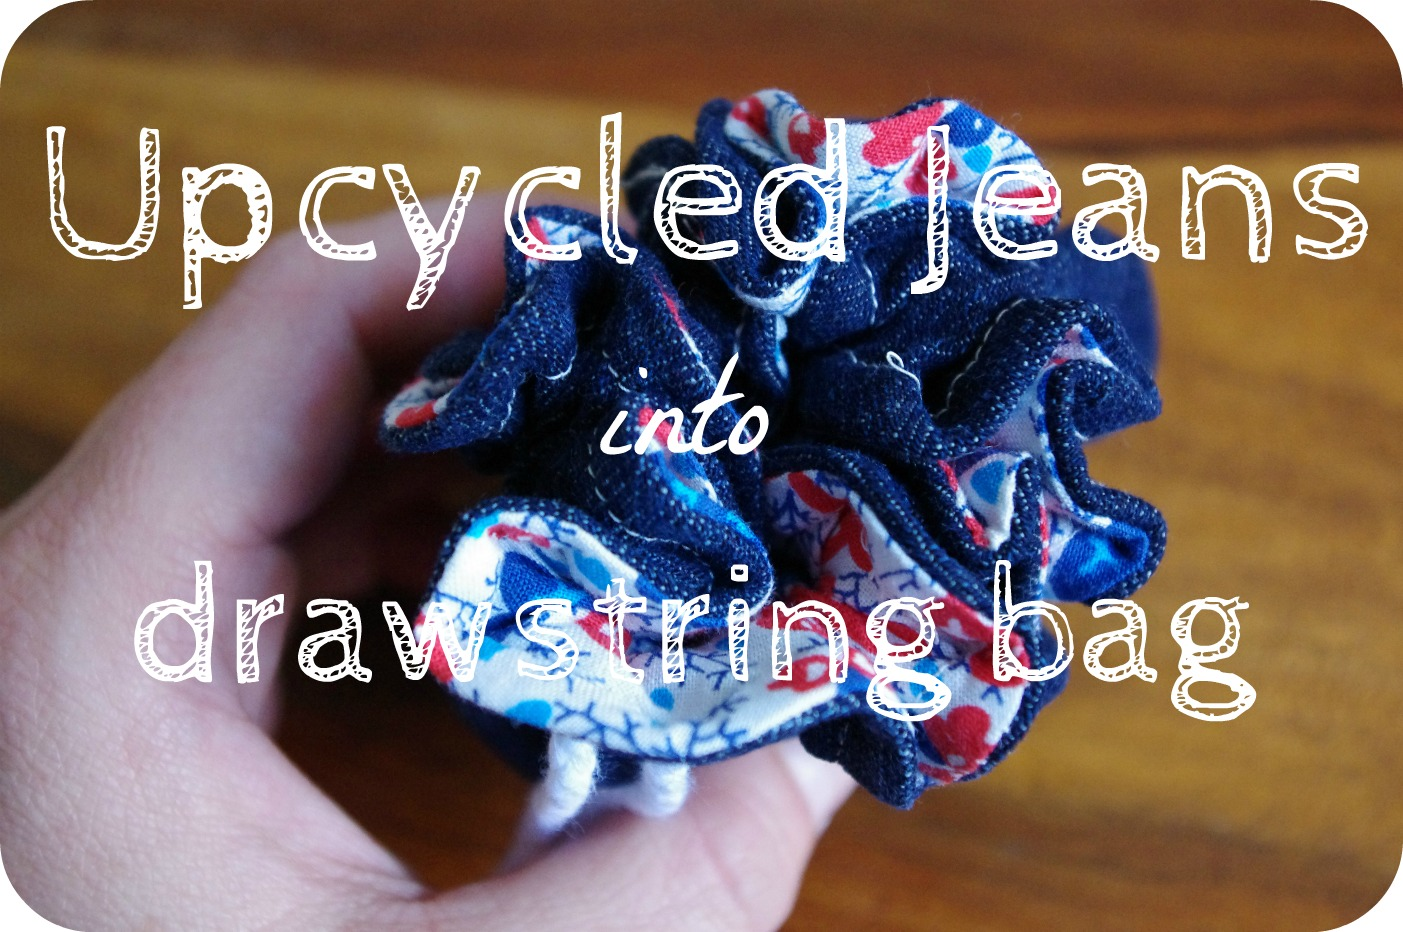 How to make a drawstring bag: Take One Pair of Jeans Challenge